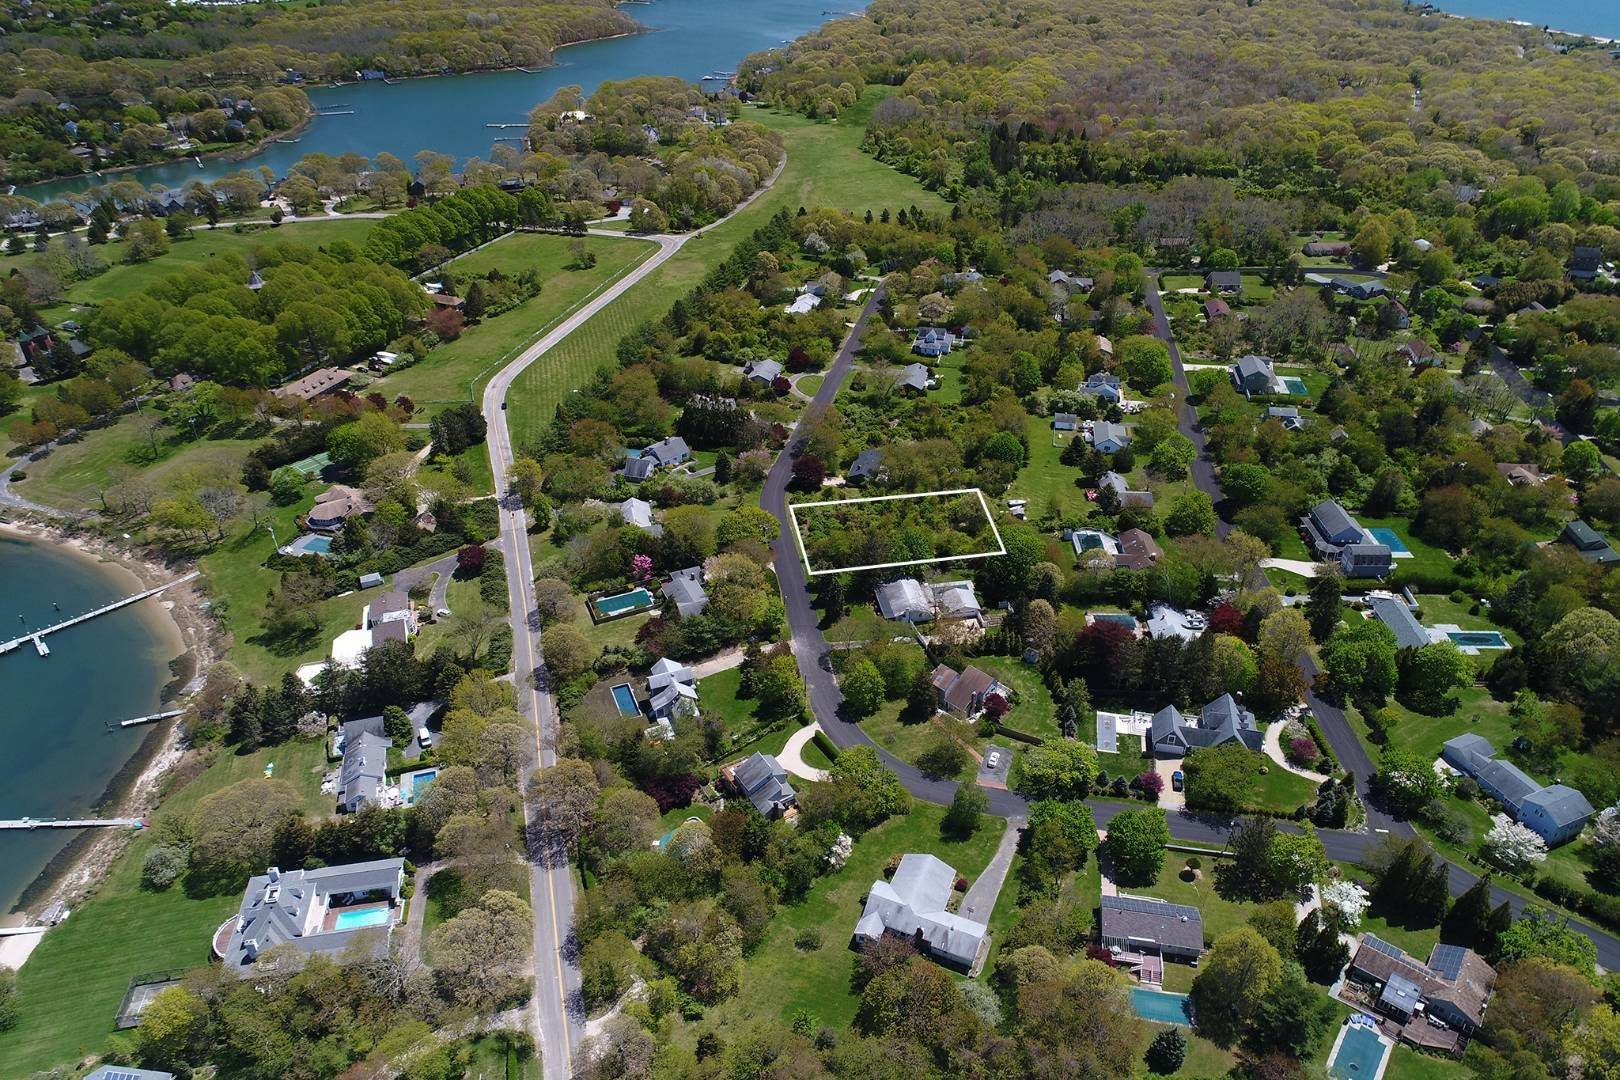 Land for Sale at Shelter Island Idyllic Country Acreage 4 Tims Trail, Shelter Island Heights, NY 11964